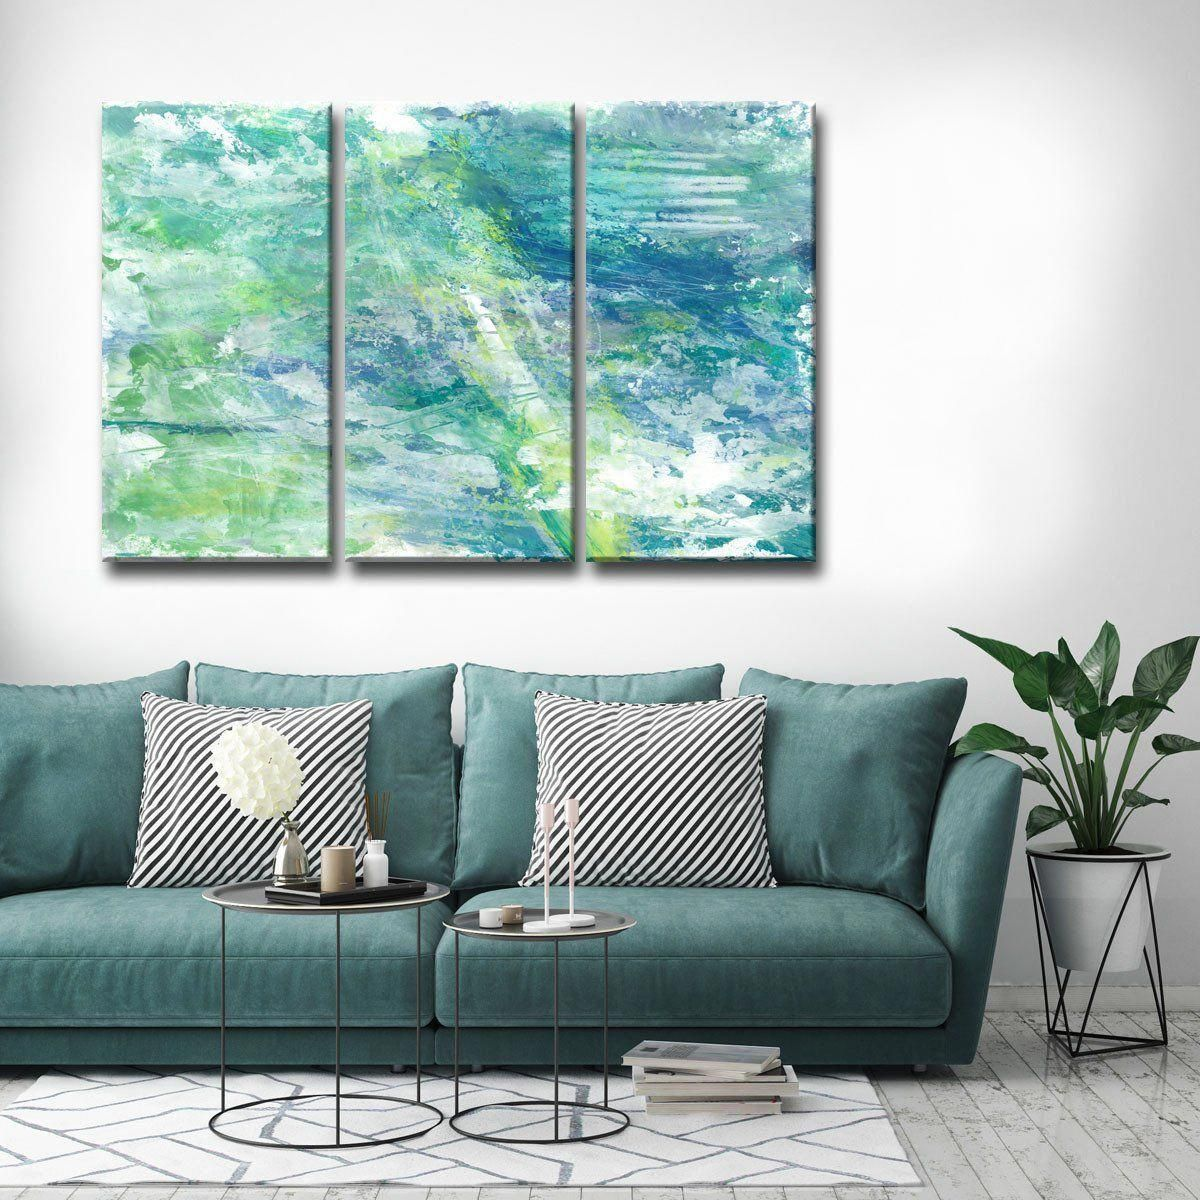 triple canvas acrylic painting ideas for the living room behind the rh pinterest com painting ideas for the living room painting ideas for the living room